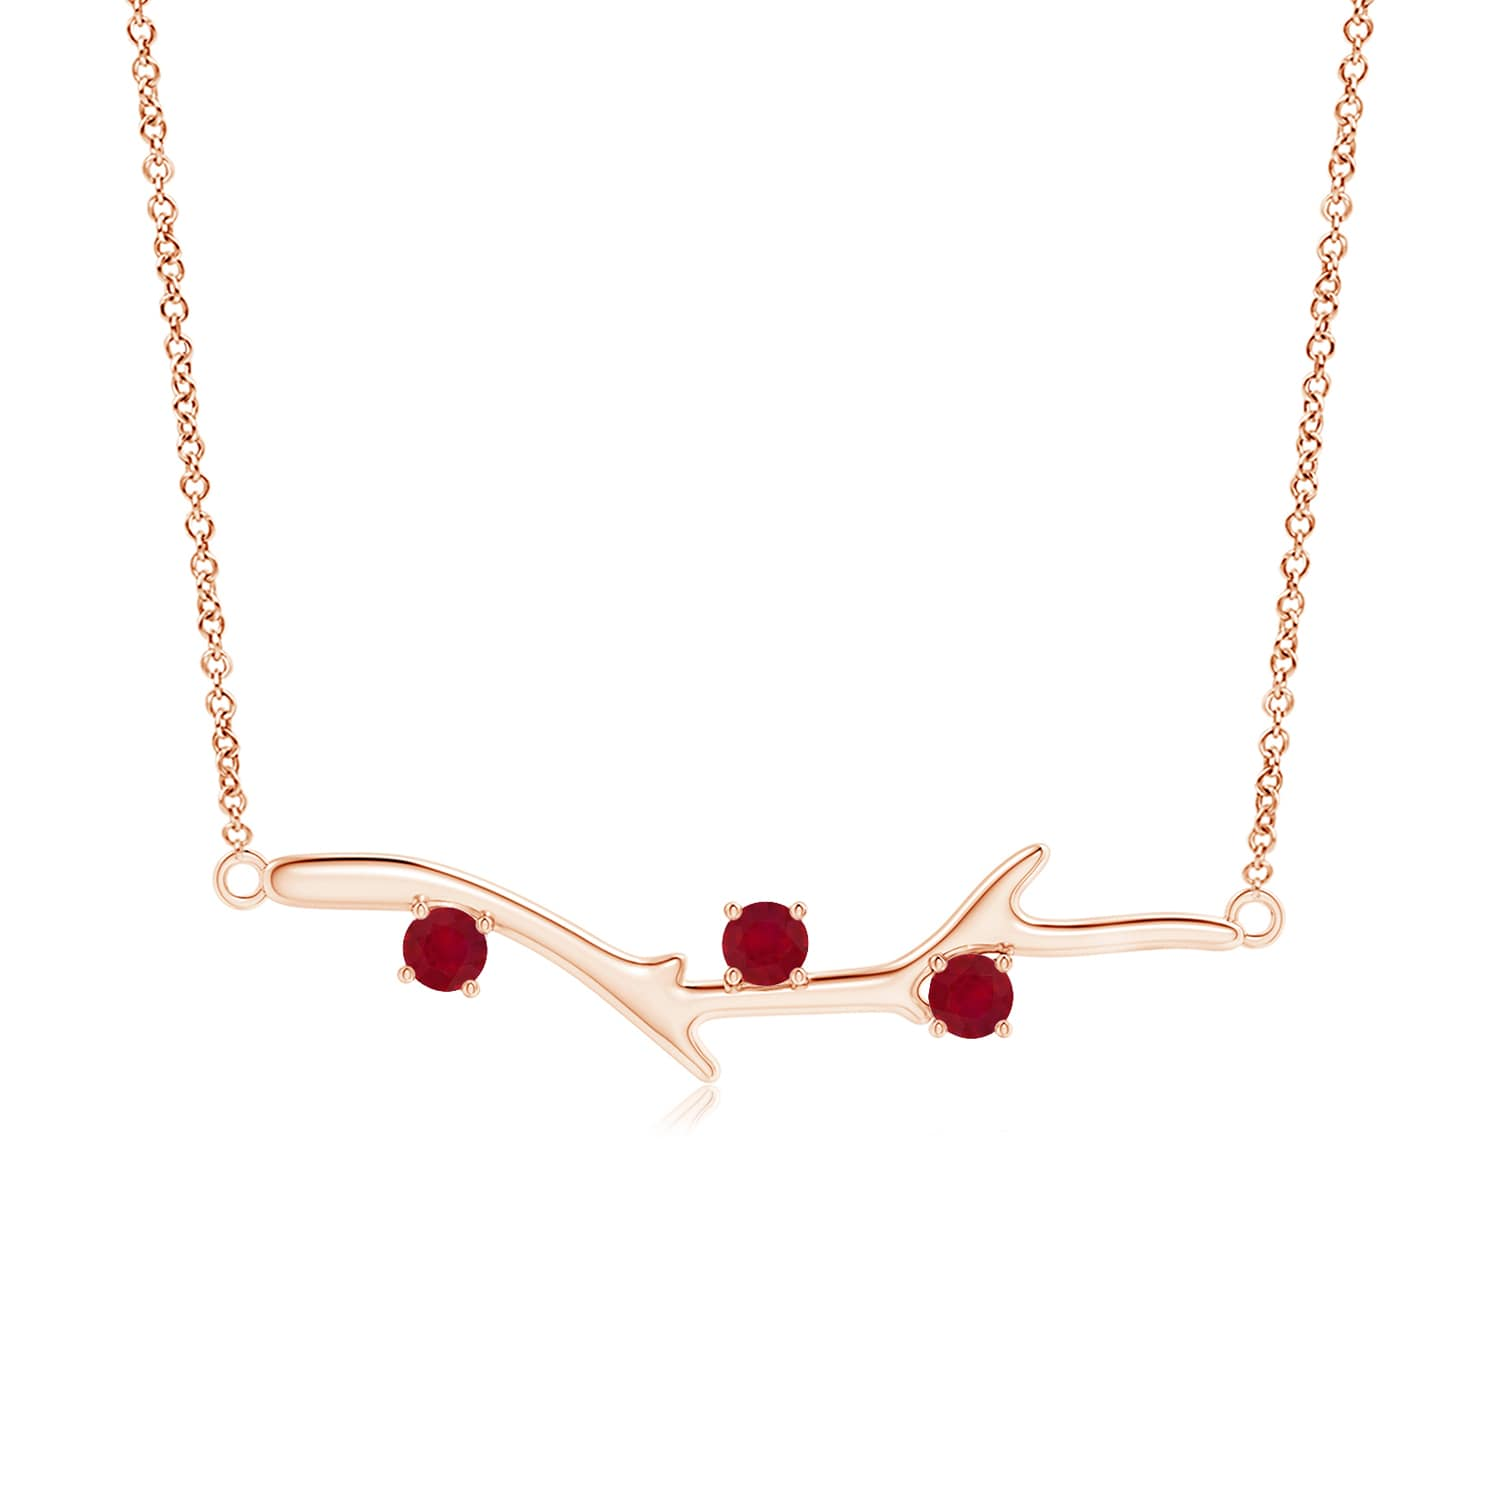 """0.45 carat Round Brilliant Prongs Set Ruby Pendant Necklace in 14K Rose Gold, 18"""" Inches, July Birthstone Pendant... by Angara.com"""